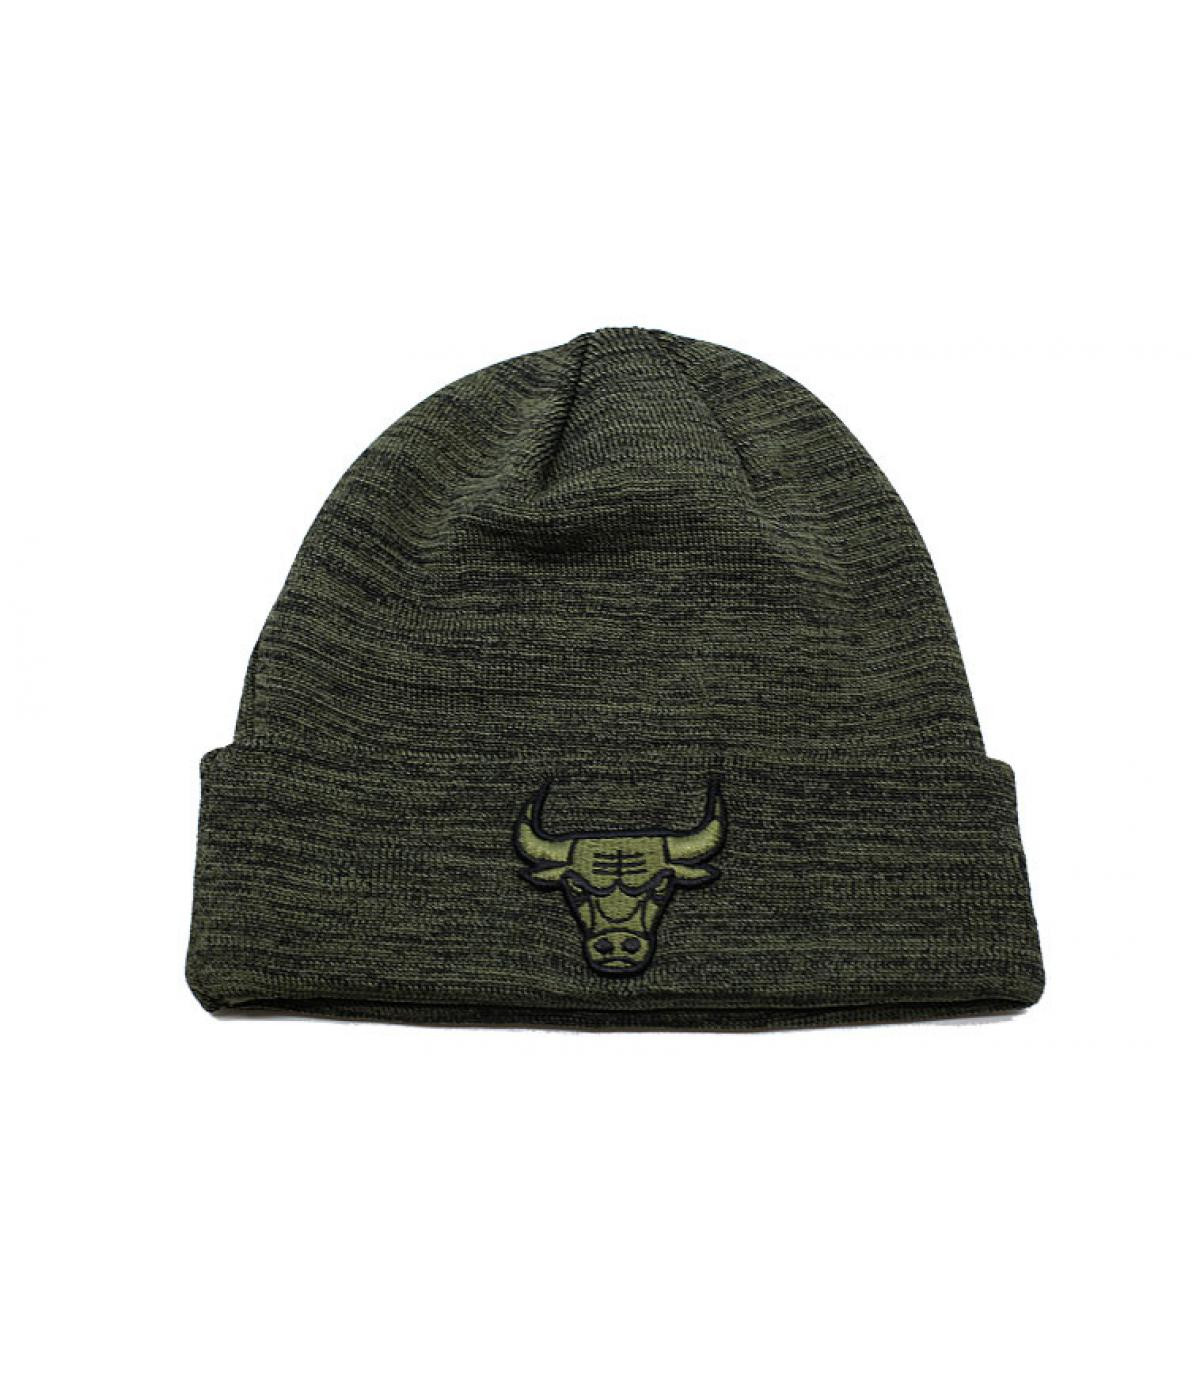 Details Engineered Fit Cuff Knit Bulls olive - afbeeling 2